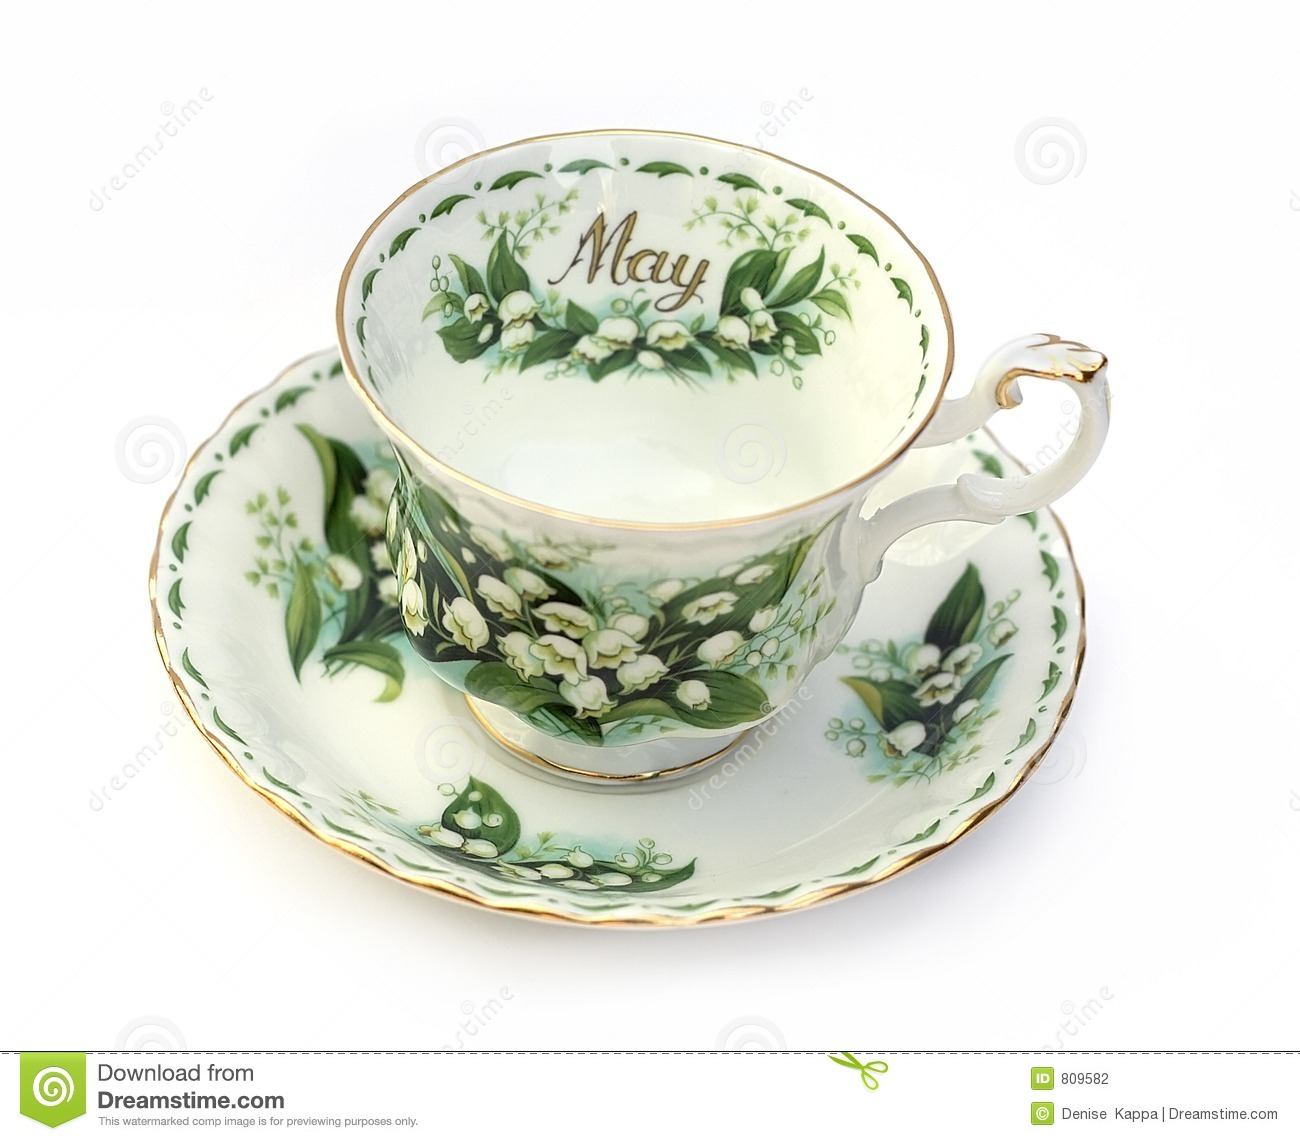 Month Of May Teacup Stock Photography Image 809582